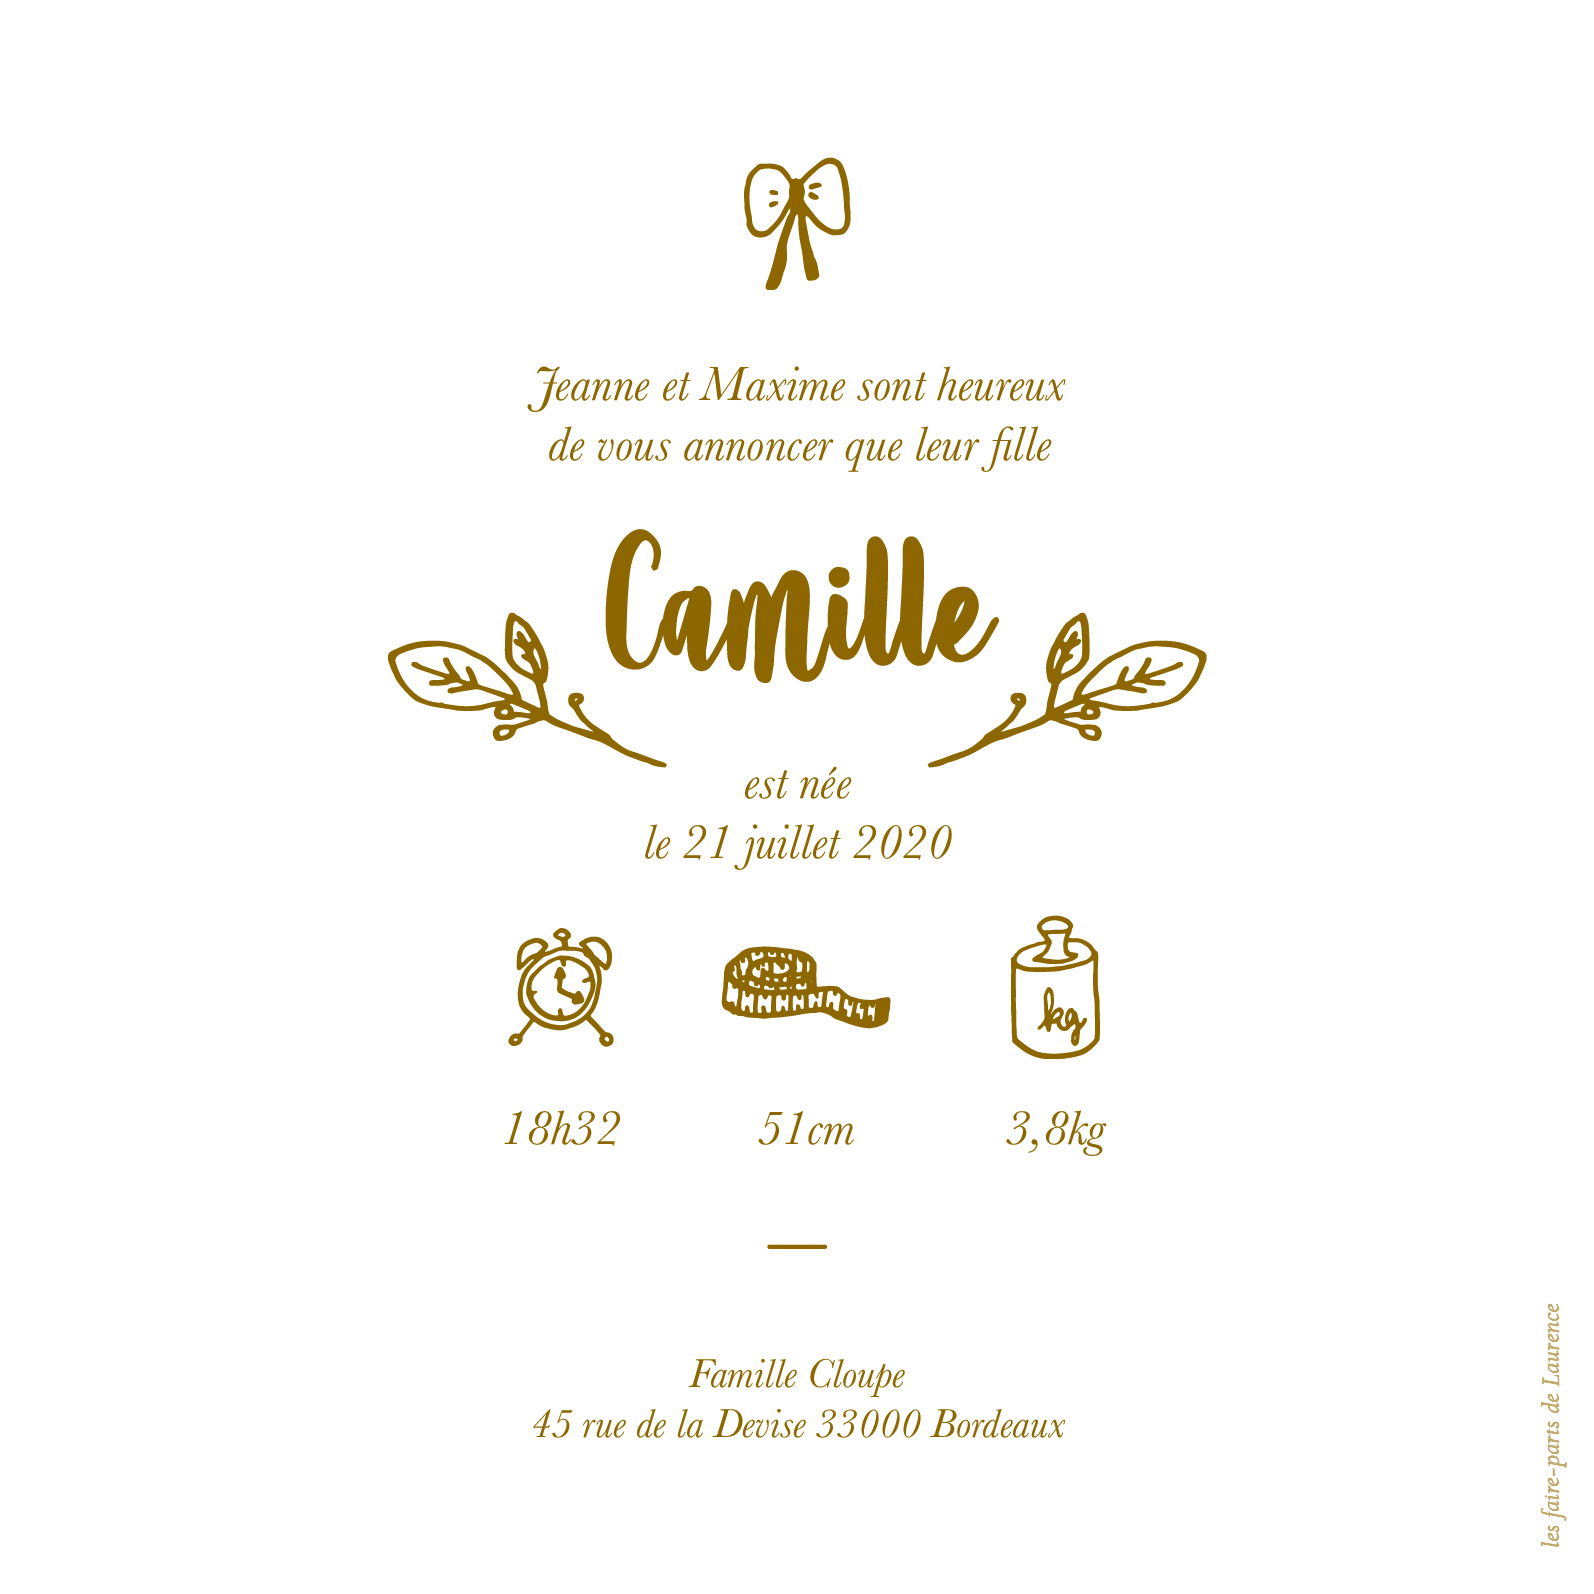 FP Camille - feuillet 2 pages -13,5:13,5